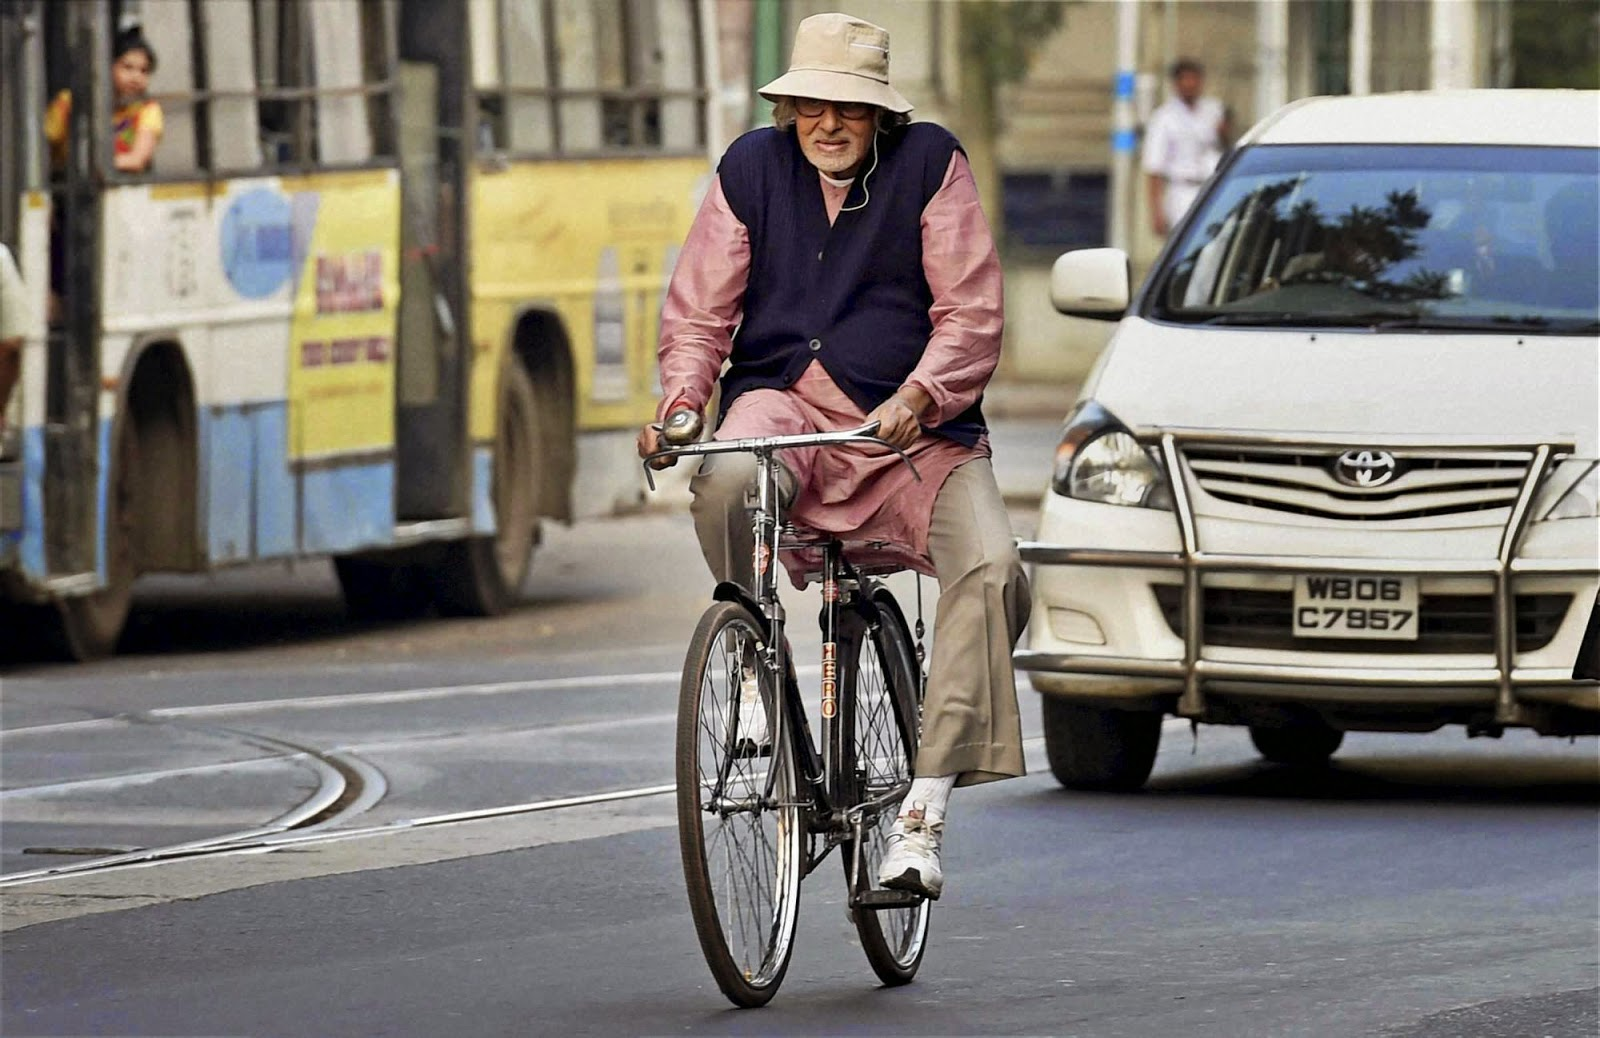 Amitabh goes for a cycle, while everyone worries about where he is.